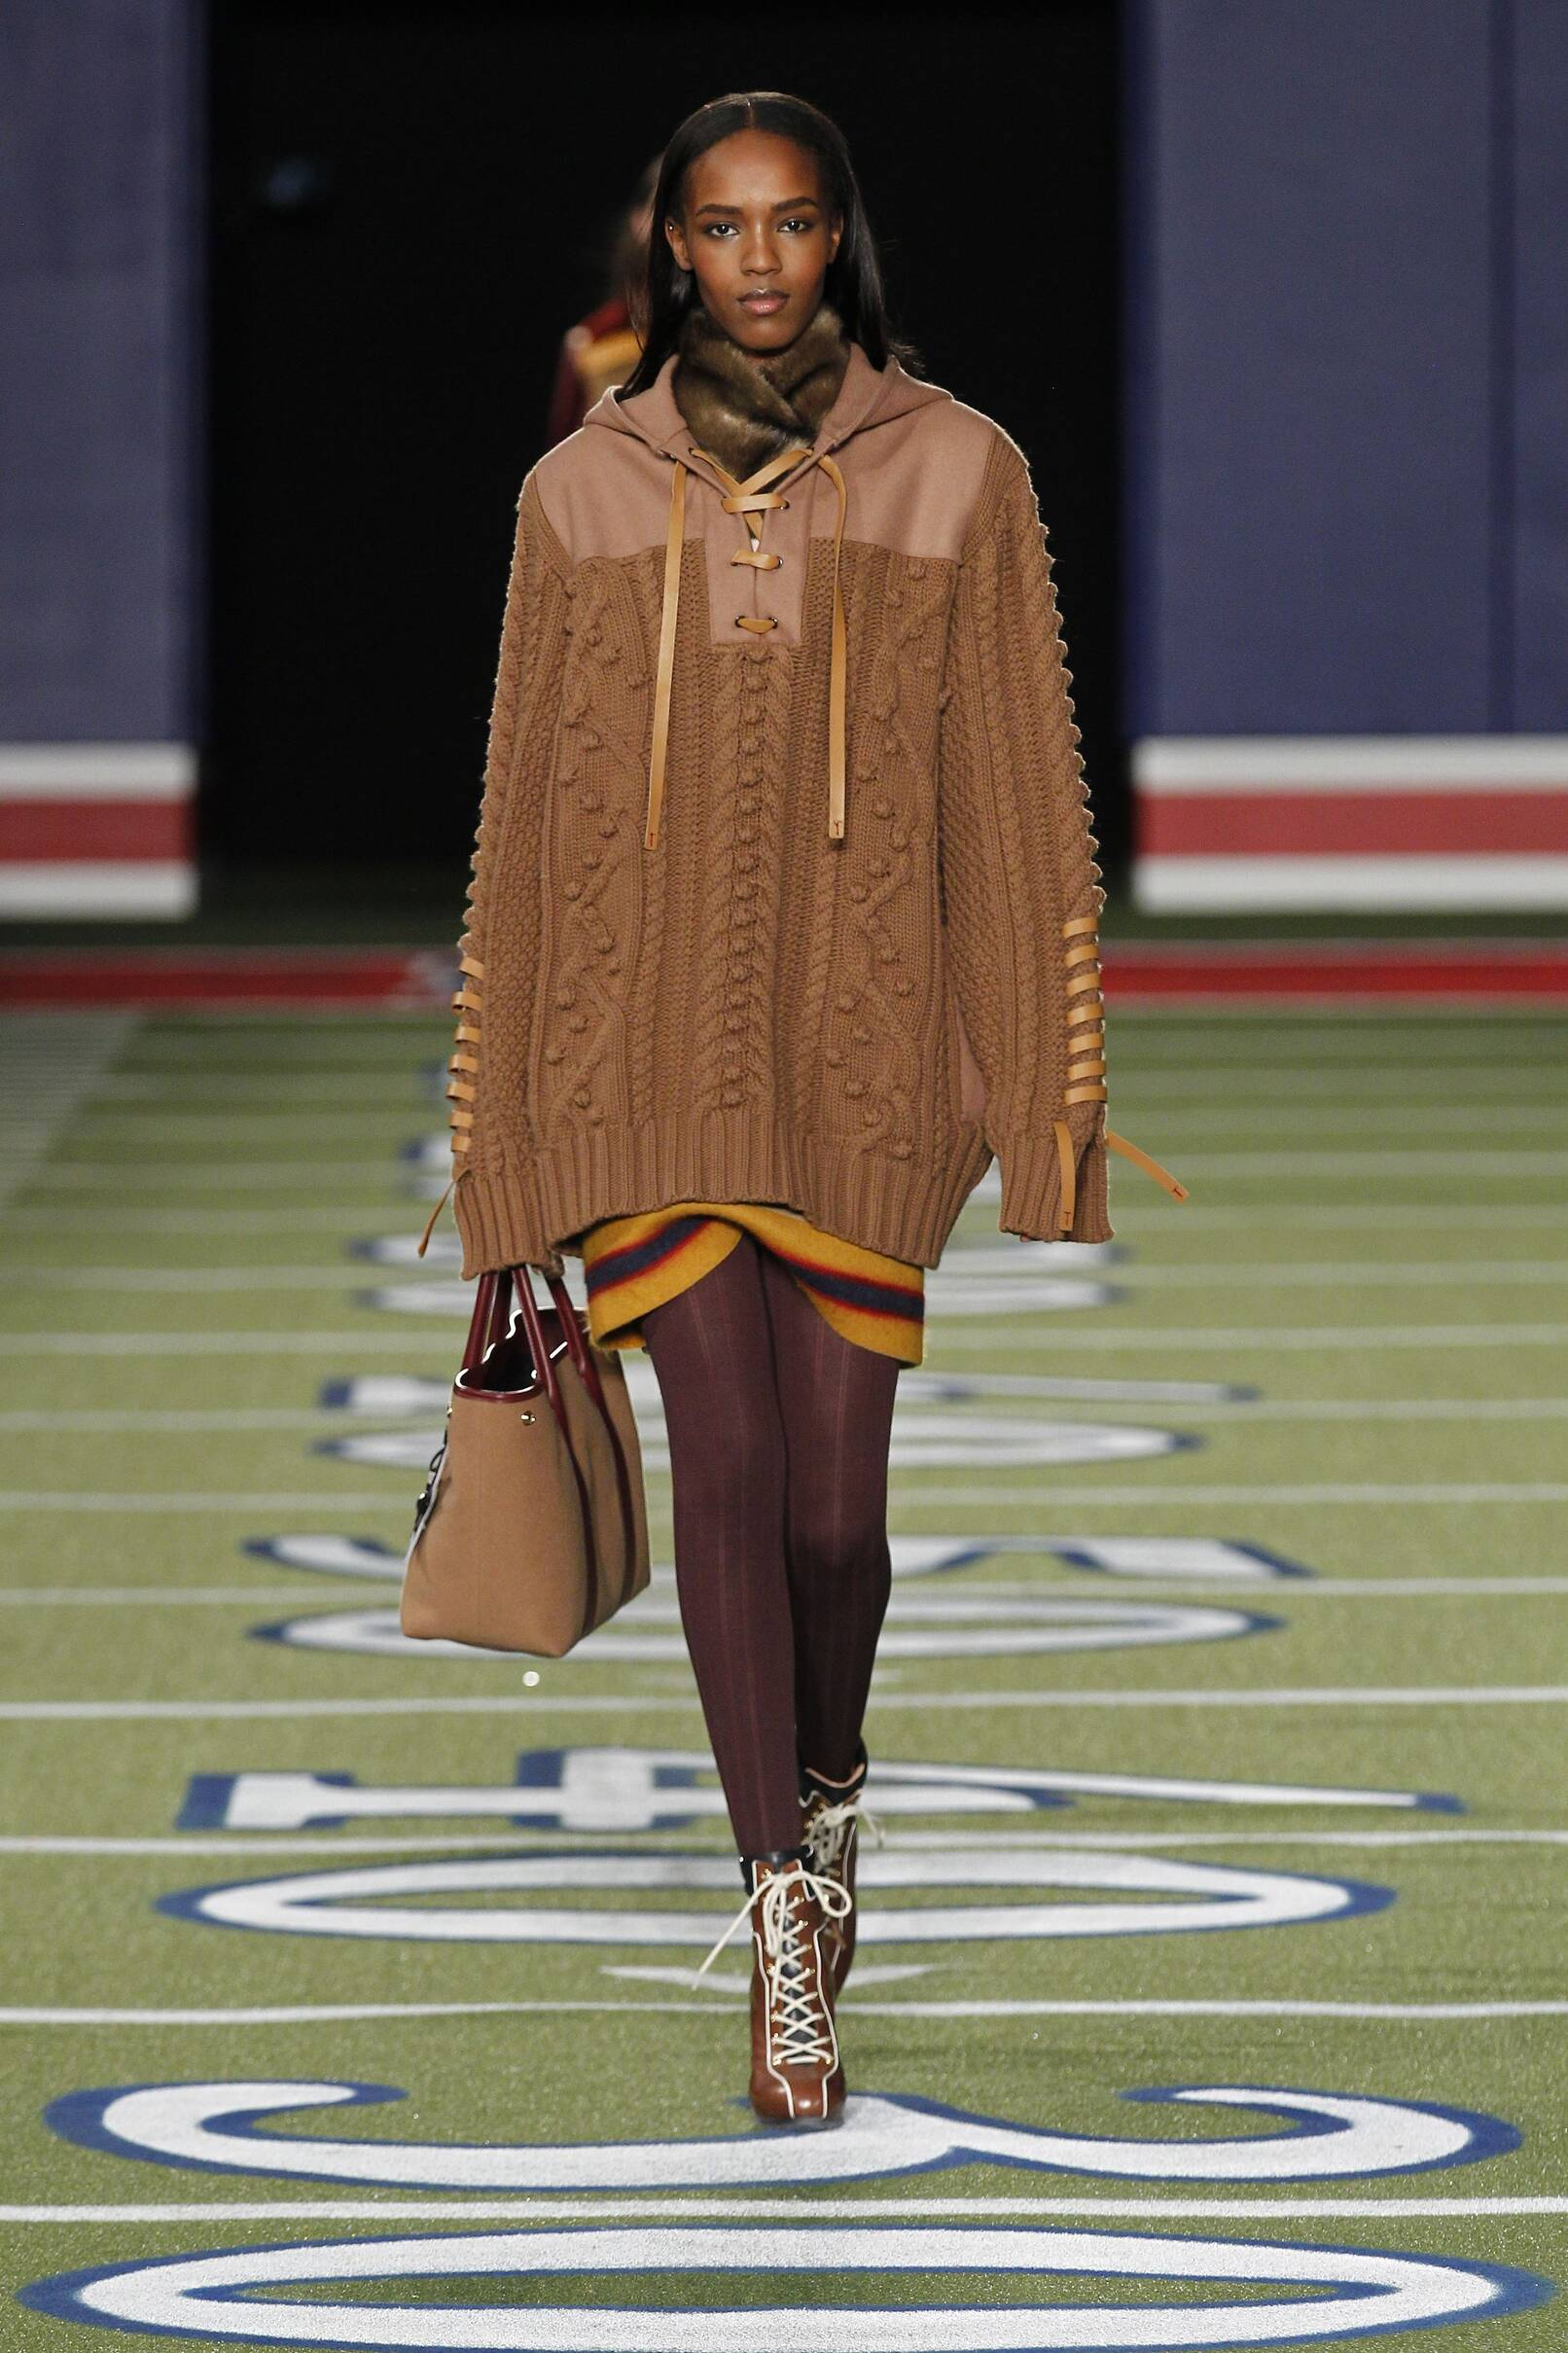 Fashion Woman Model Tommy Hilfiger Collection Catwalk